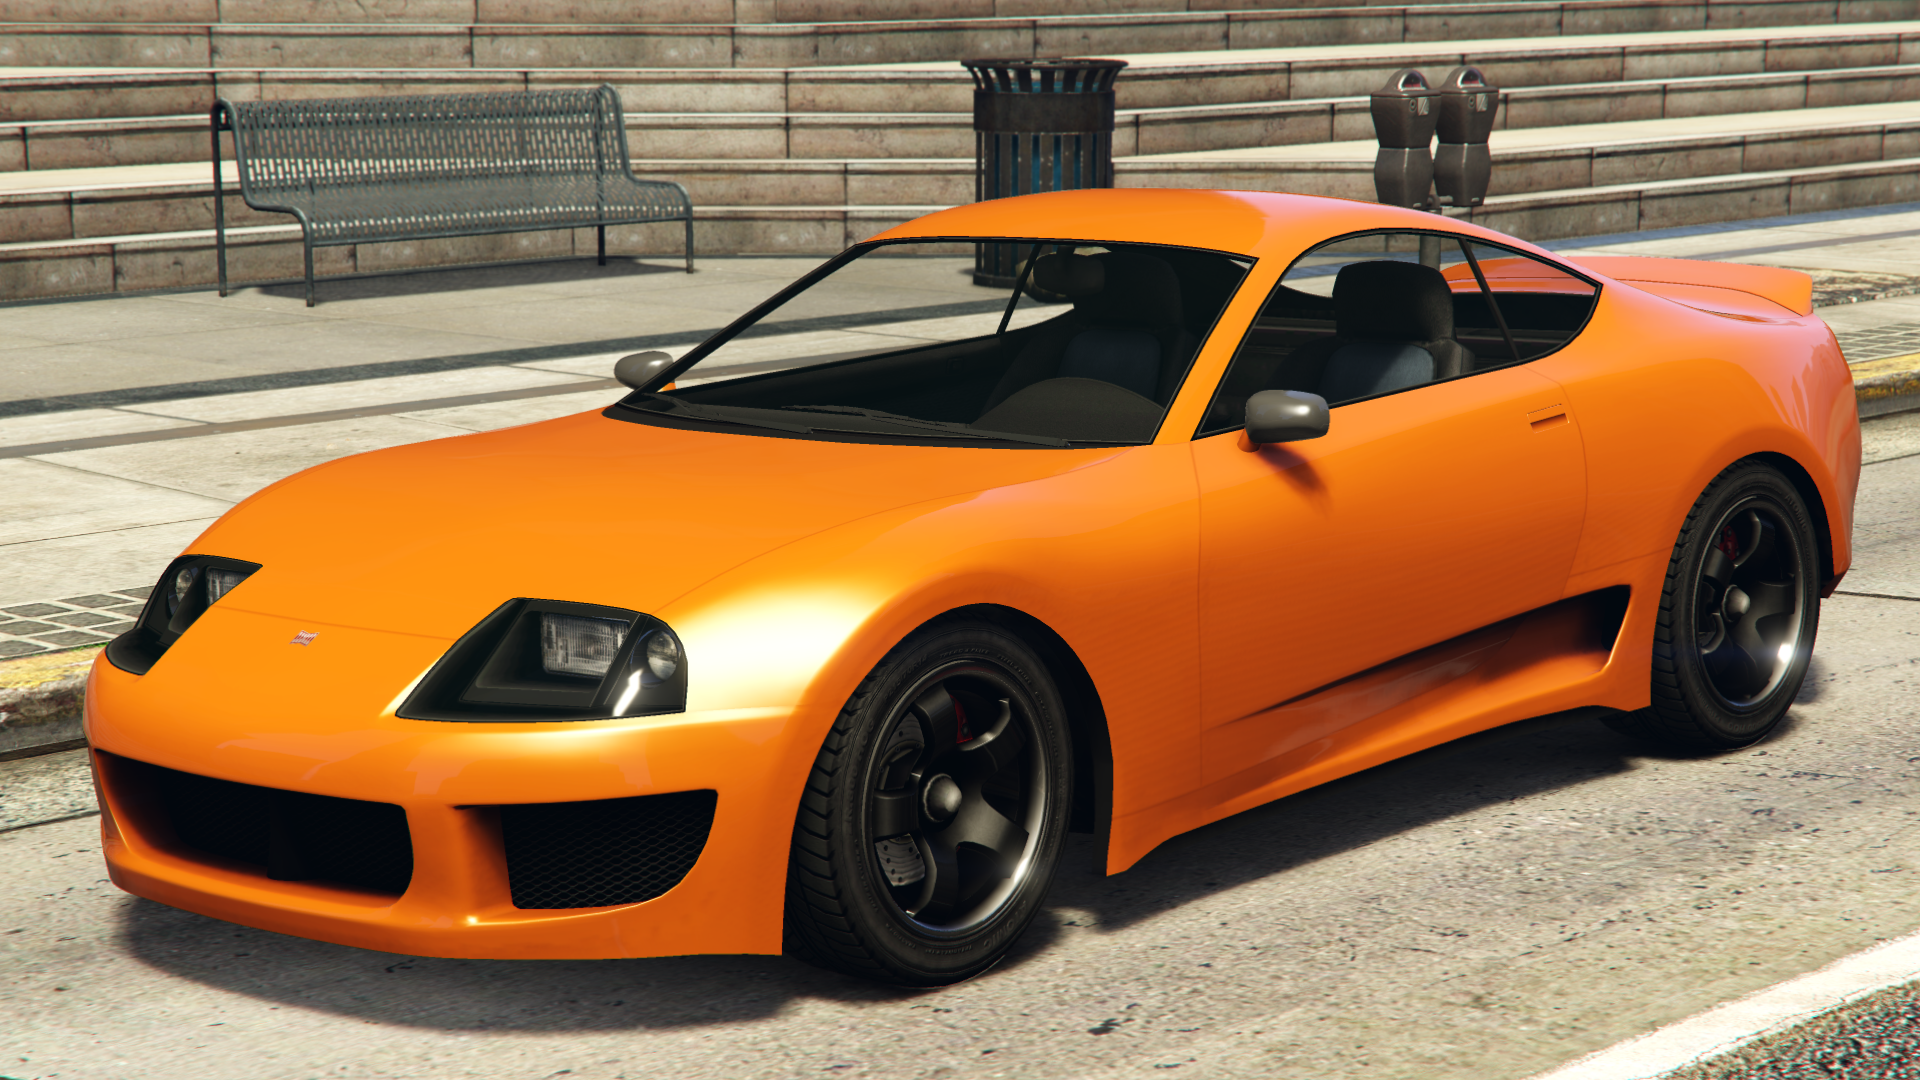 Jester Classic | GTA Wiki | FANDOM powered by Wikia